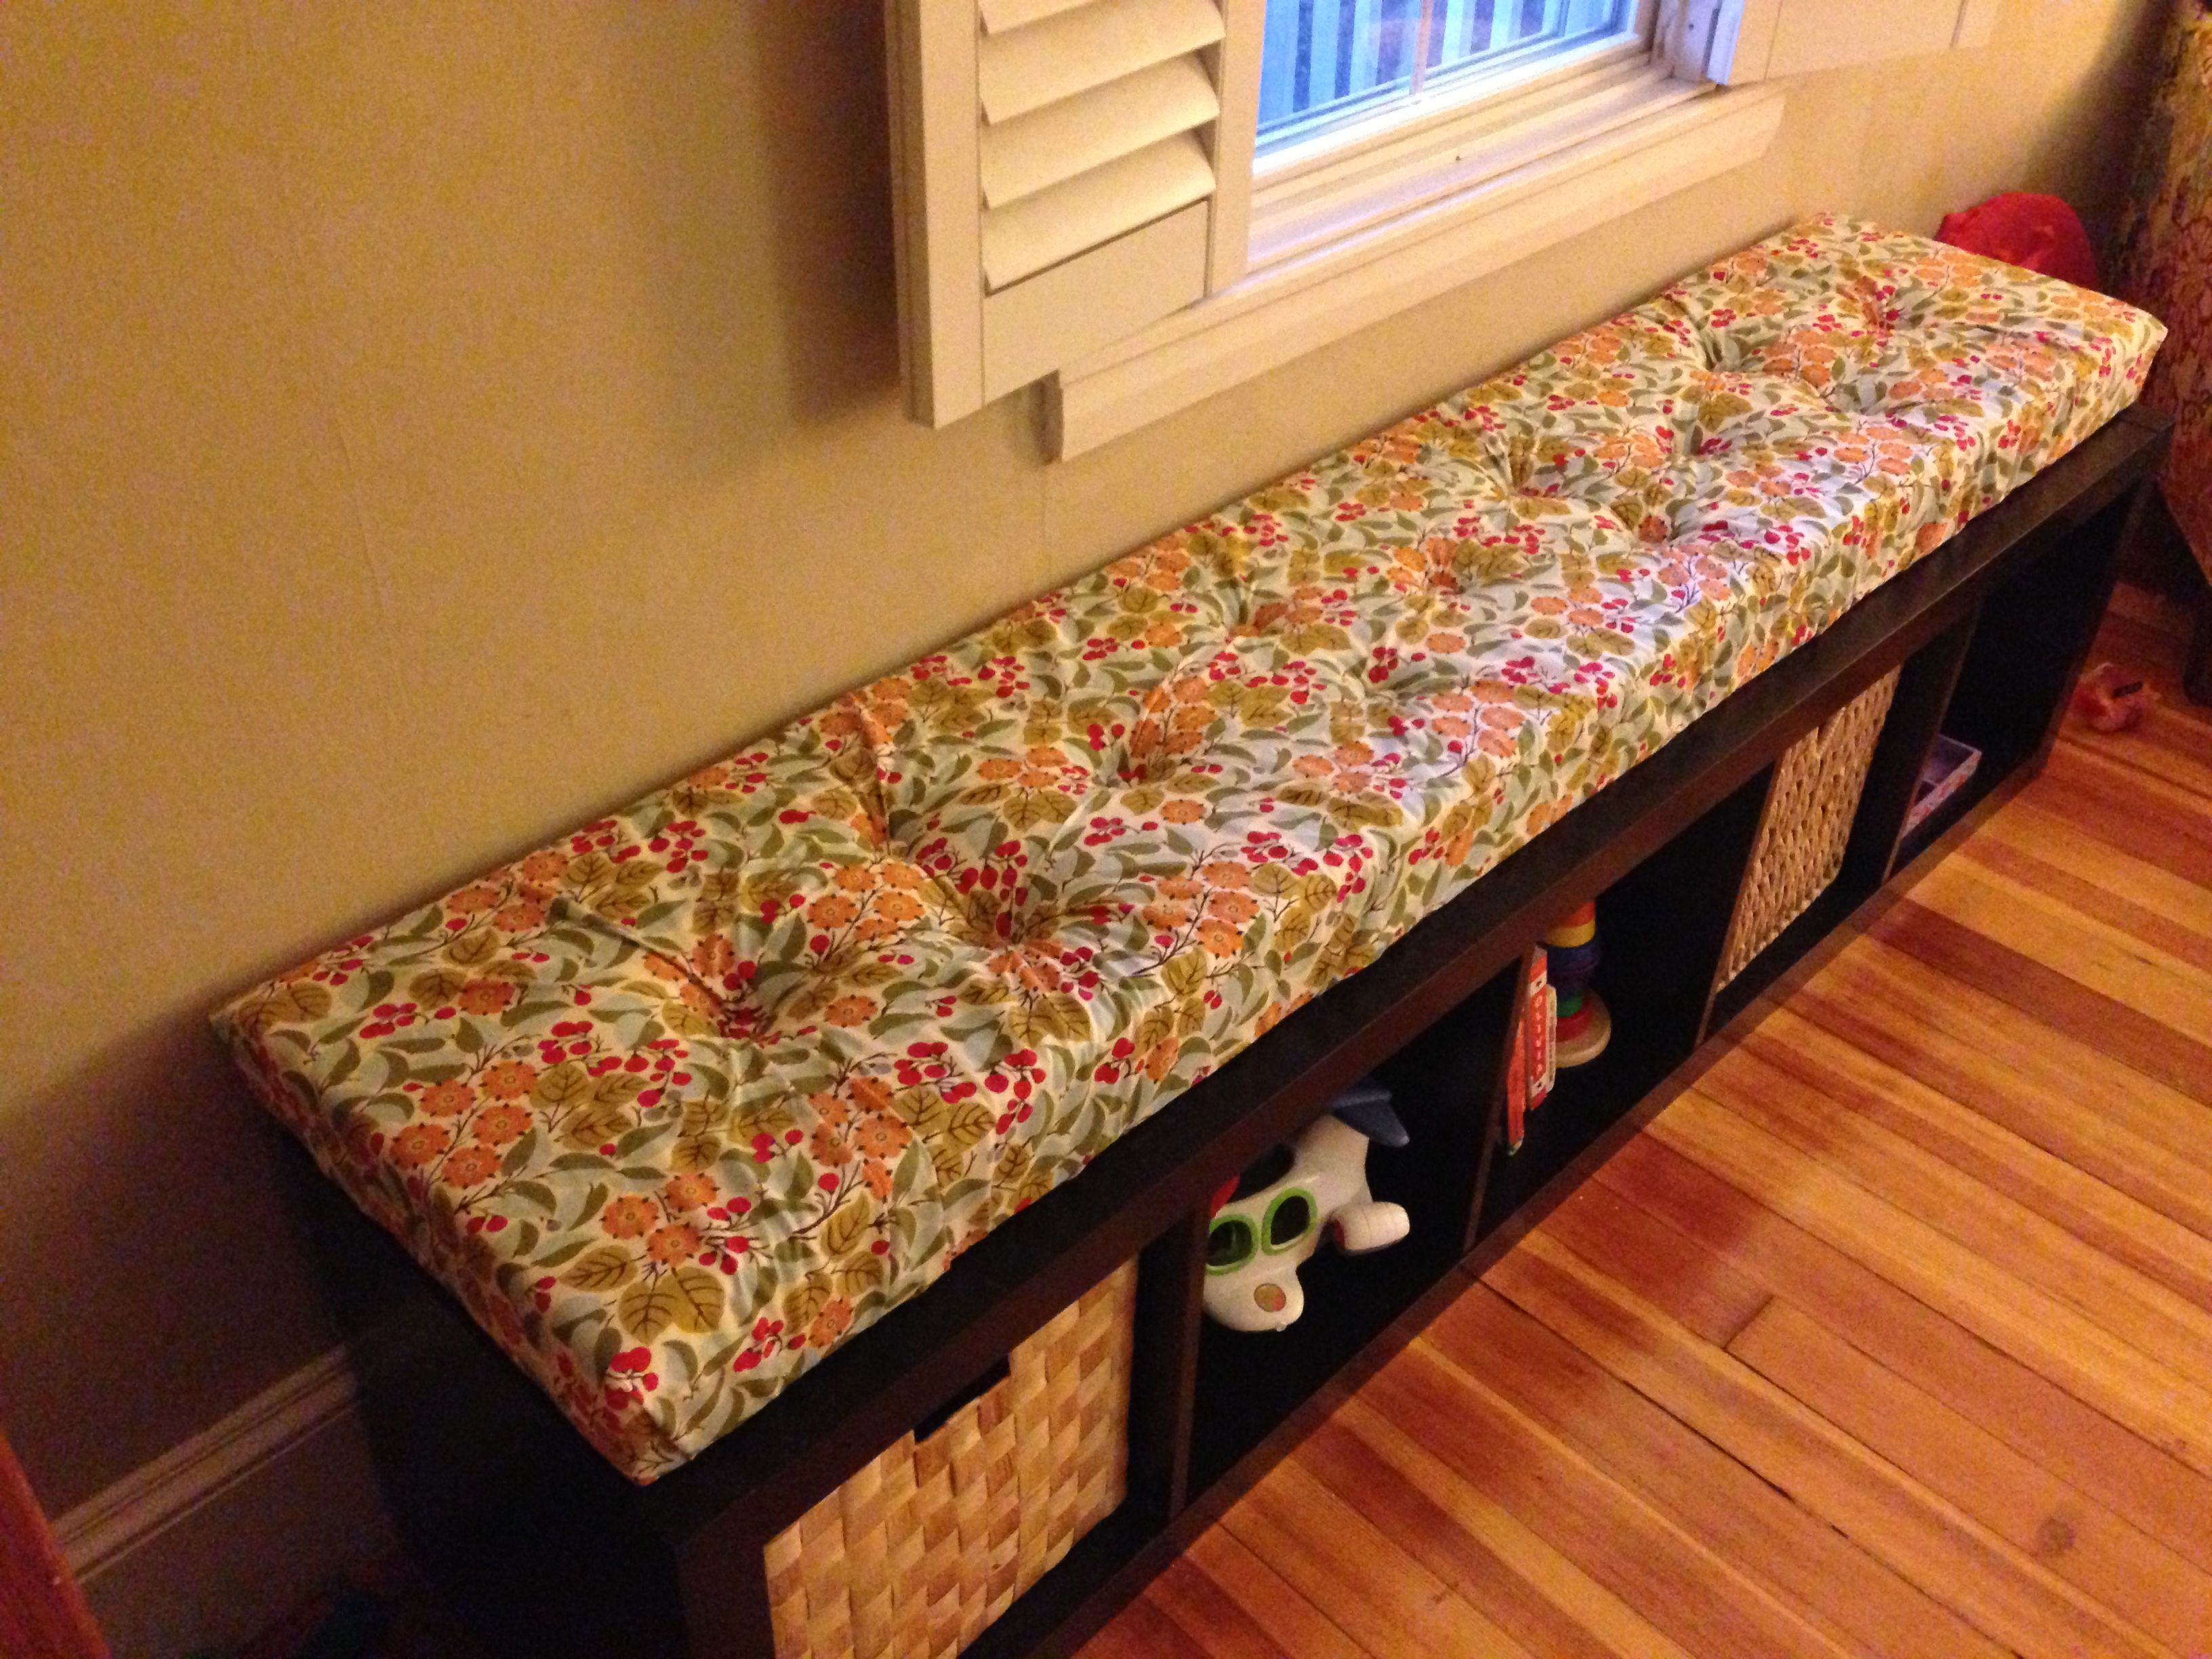 Bench Cushion Ideas Part - 27: DIY Tufted Window Seat Cushion For IKEA Expedit Shelving